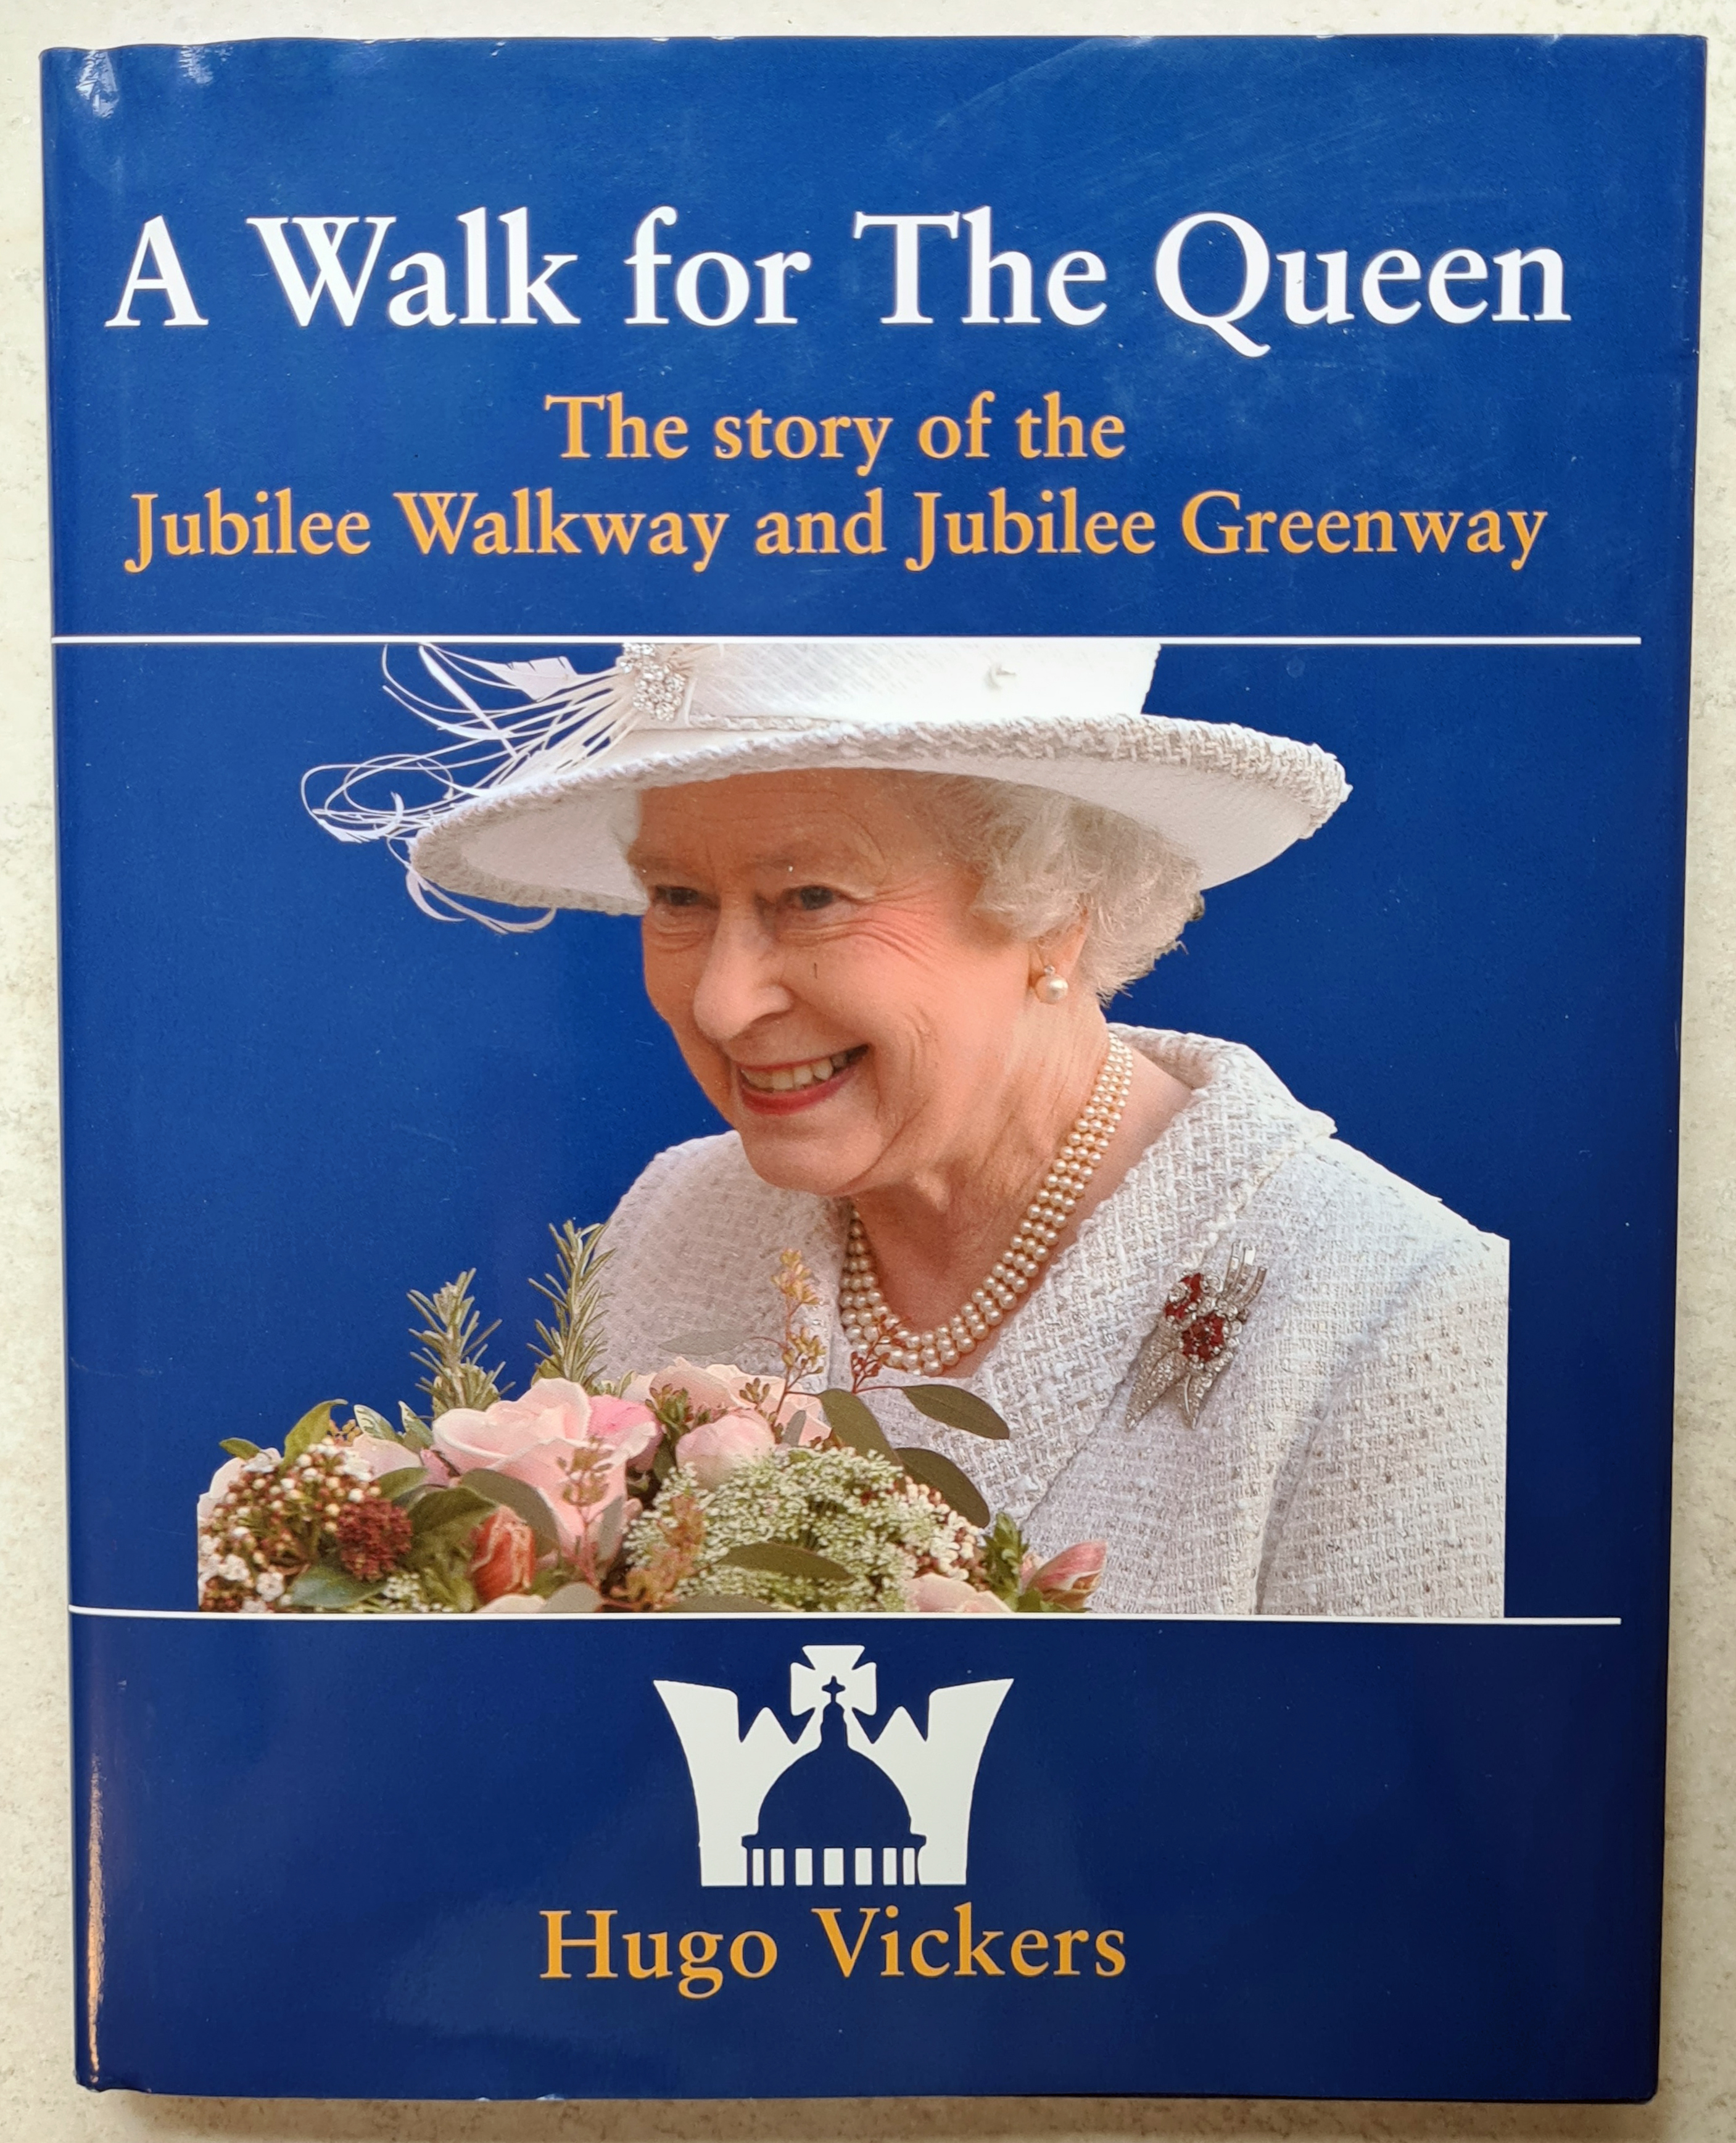 A Walk for the Queen, by Hugo Vickers